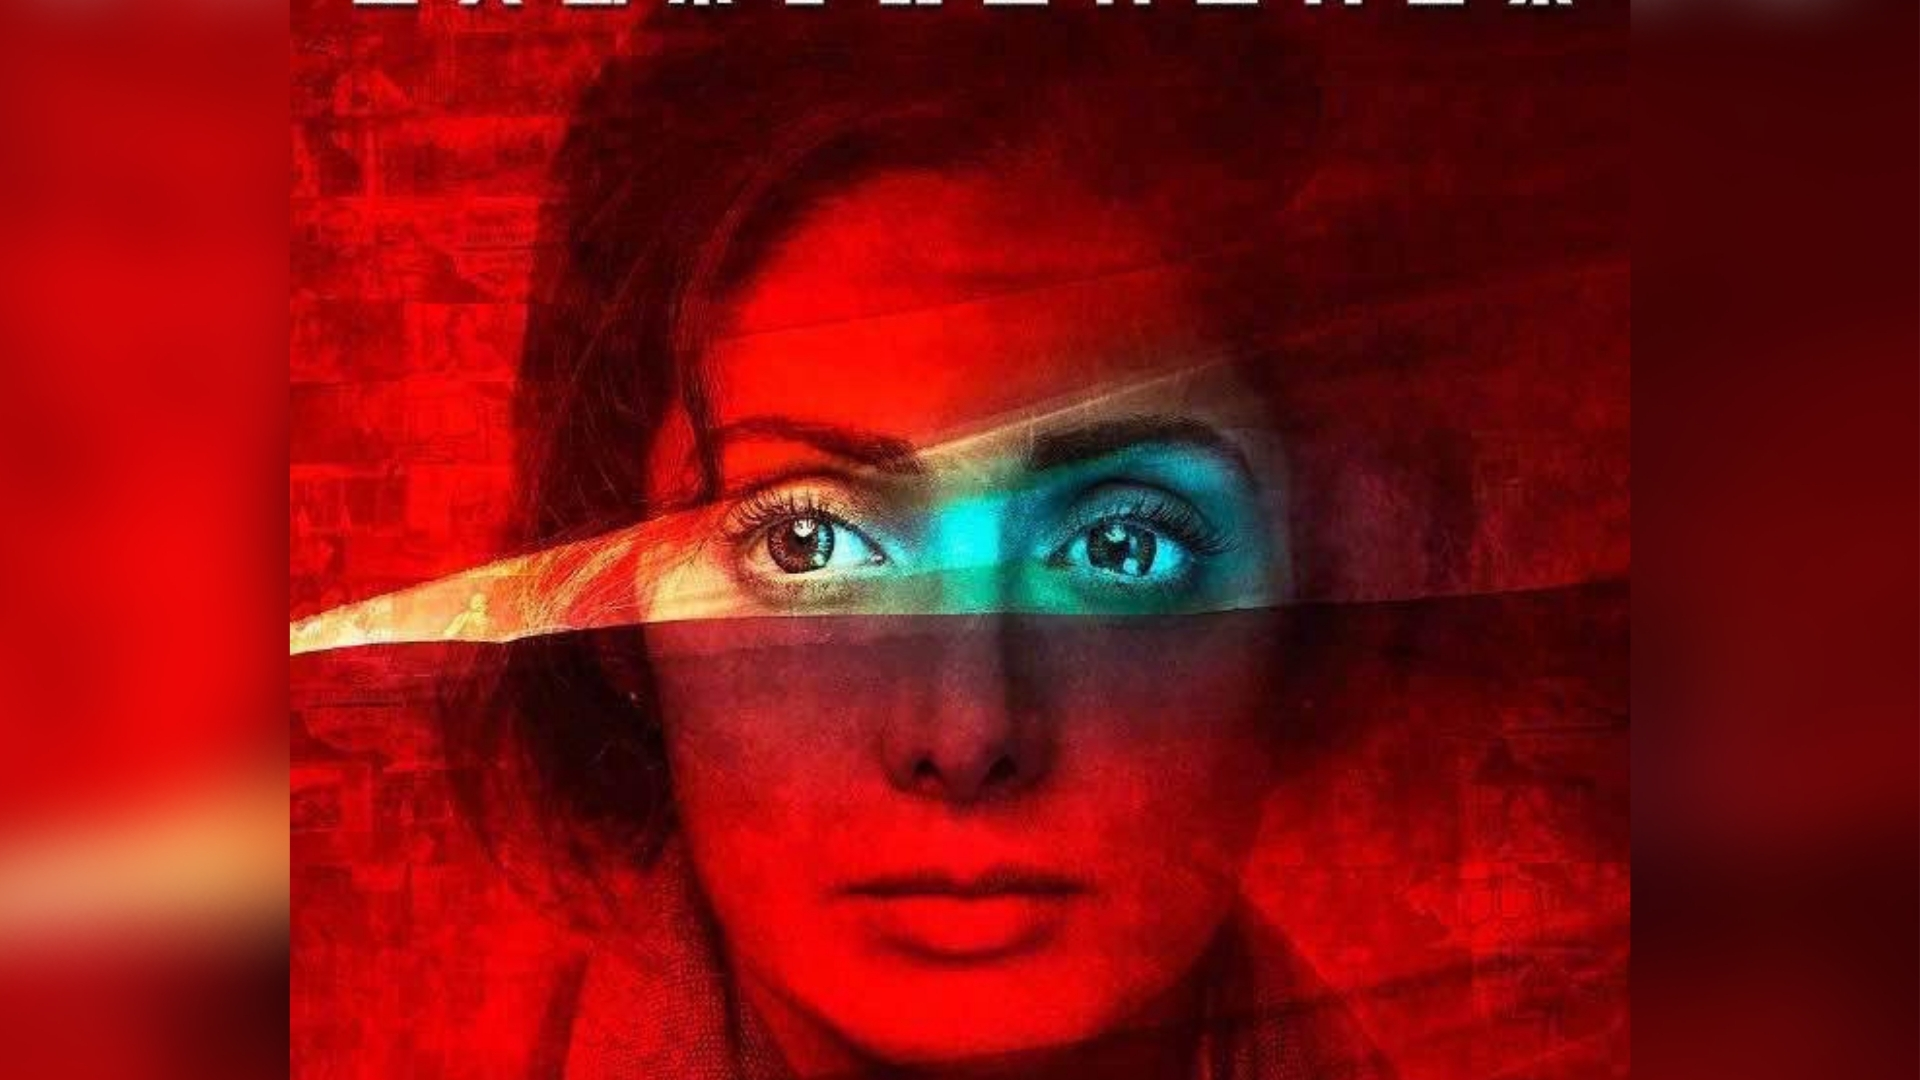 Sridevi's 'Mom' Wins China Over, Opens Better Than 'Andhadhun'